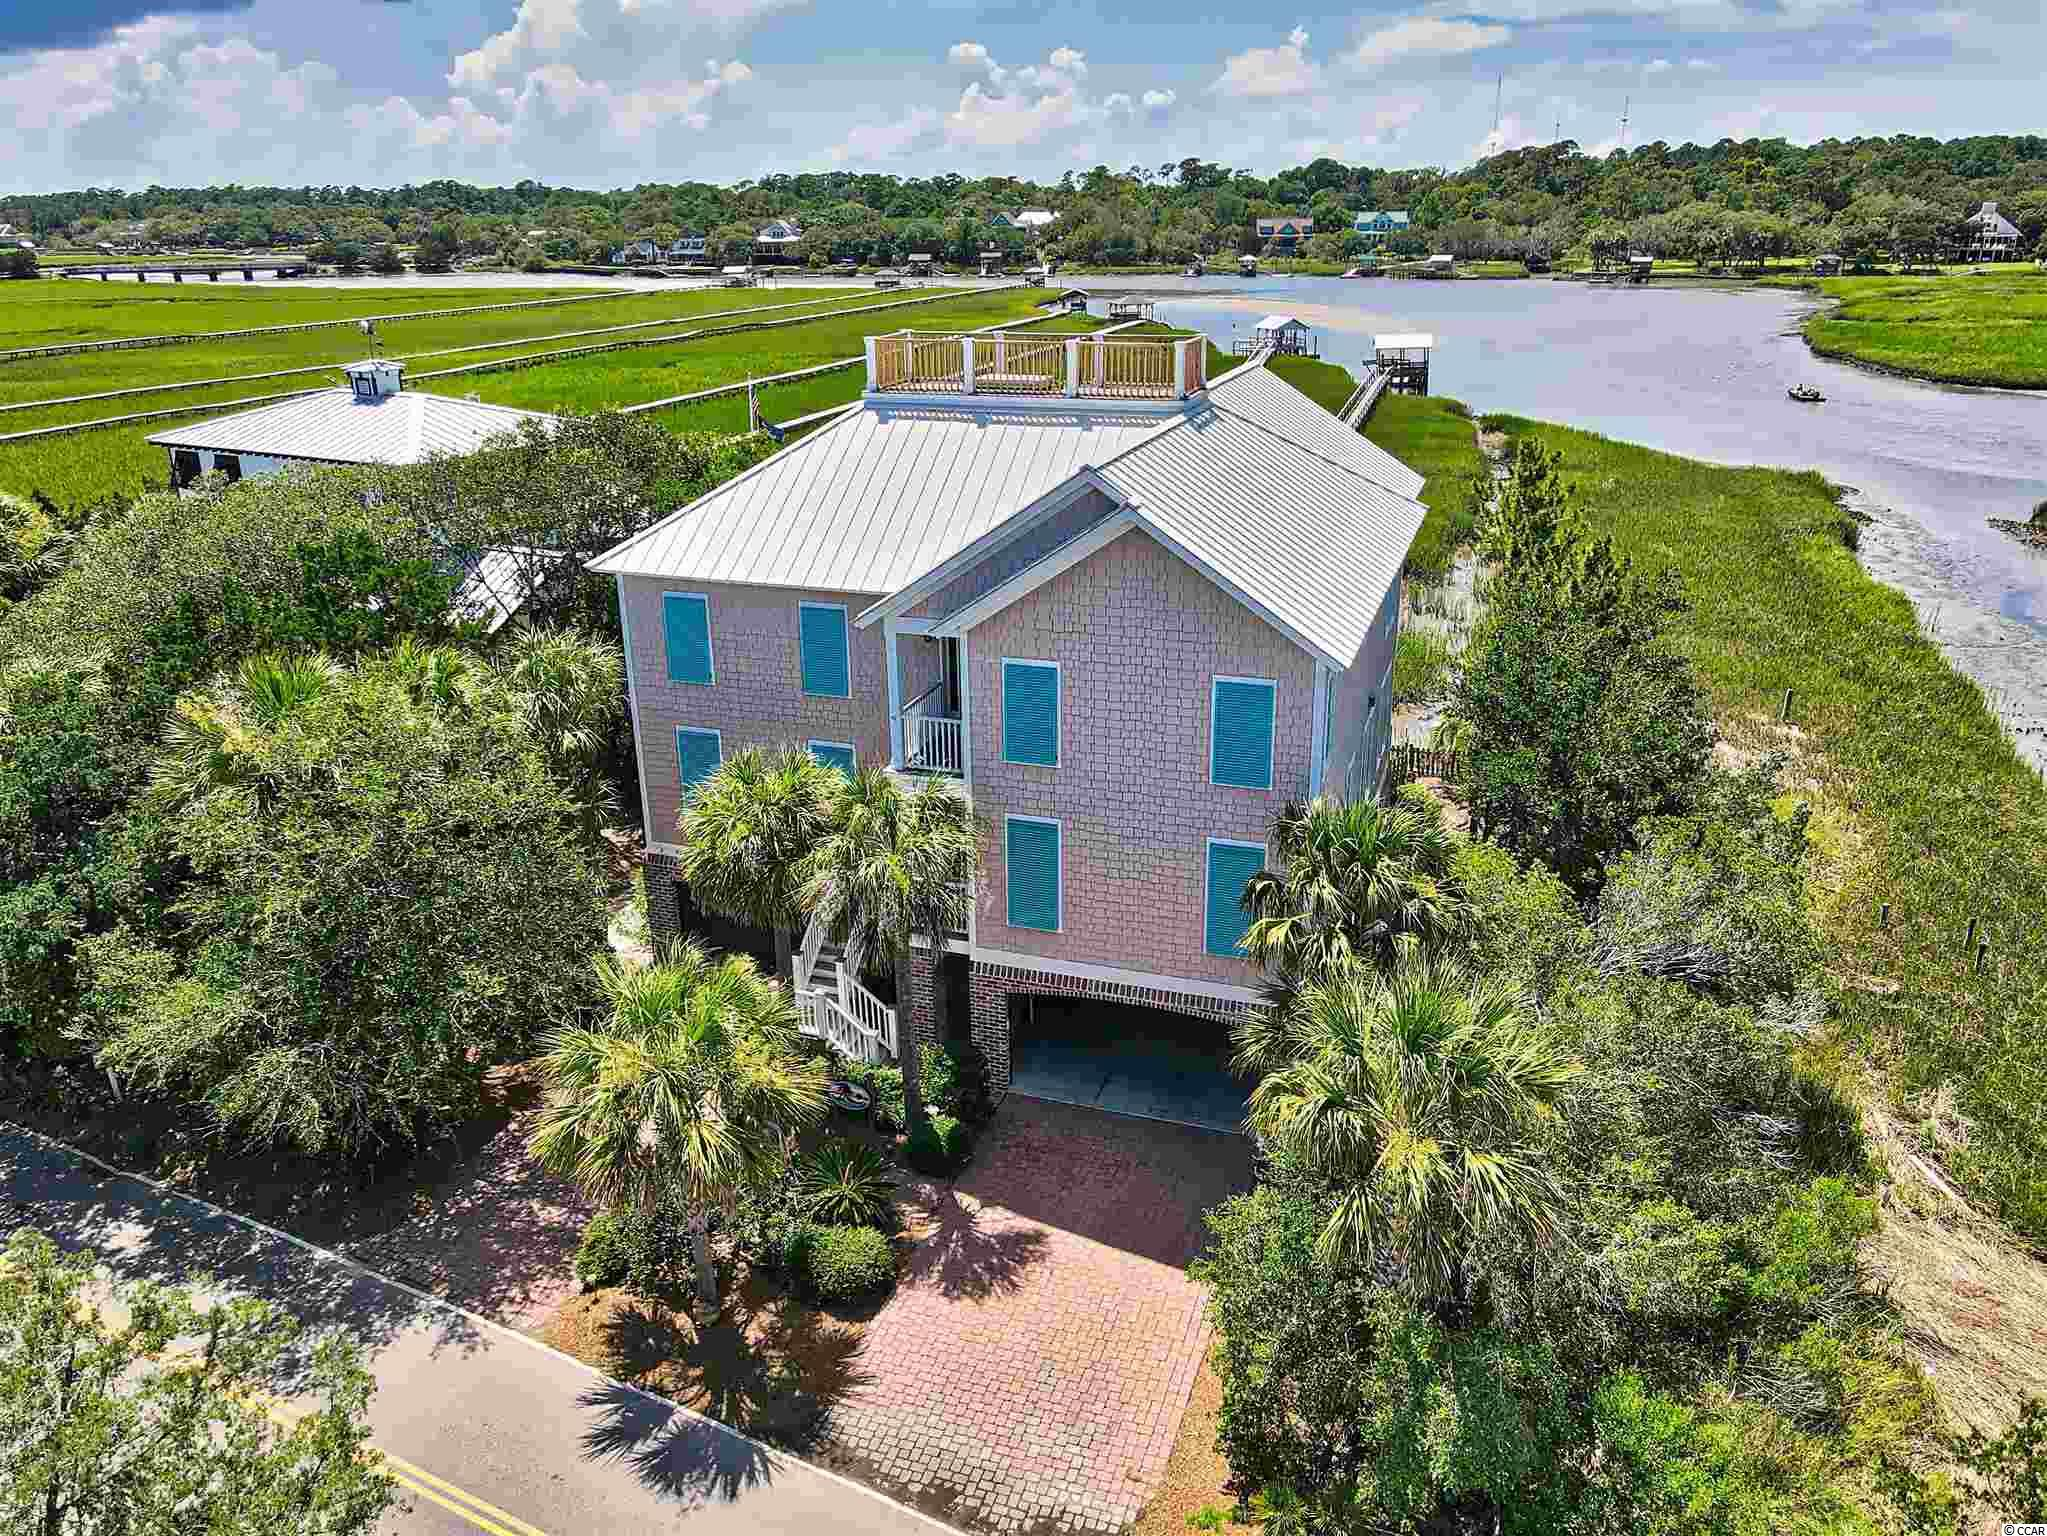 """One in a lifetime opportunity to own the perfect beach house.  Nestled along Pawleys Island's scenic creek and mere steps from the sand of the historic beach, this 5 BR/5 1/2 bath home is loaded with unique features.  From the incredible views to the expansive dock, elevator and """"widow's walk"""" perched high atop the home, this is the perfect place for memories to be made."""